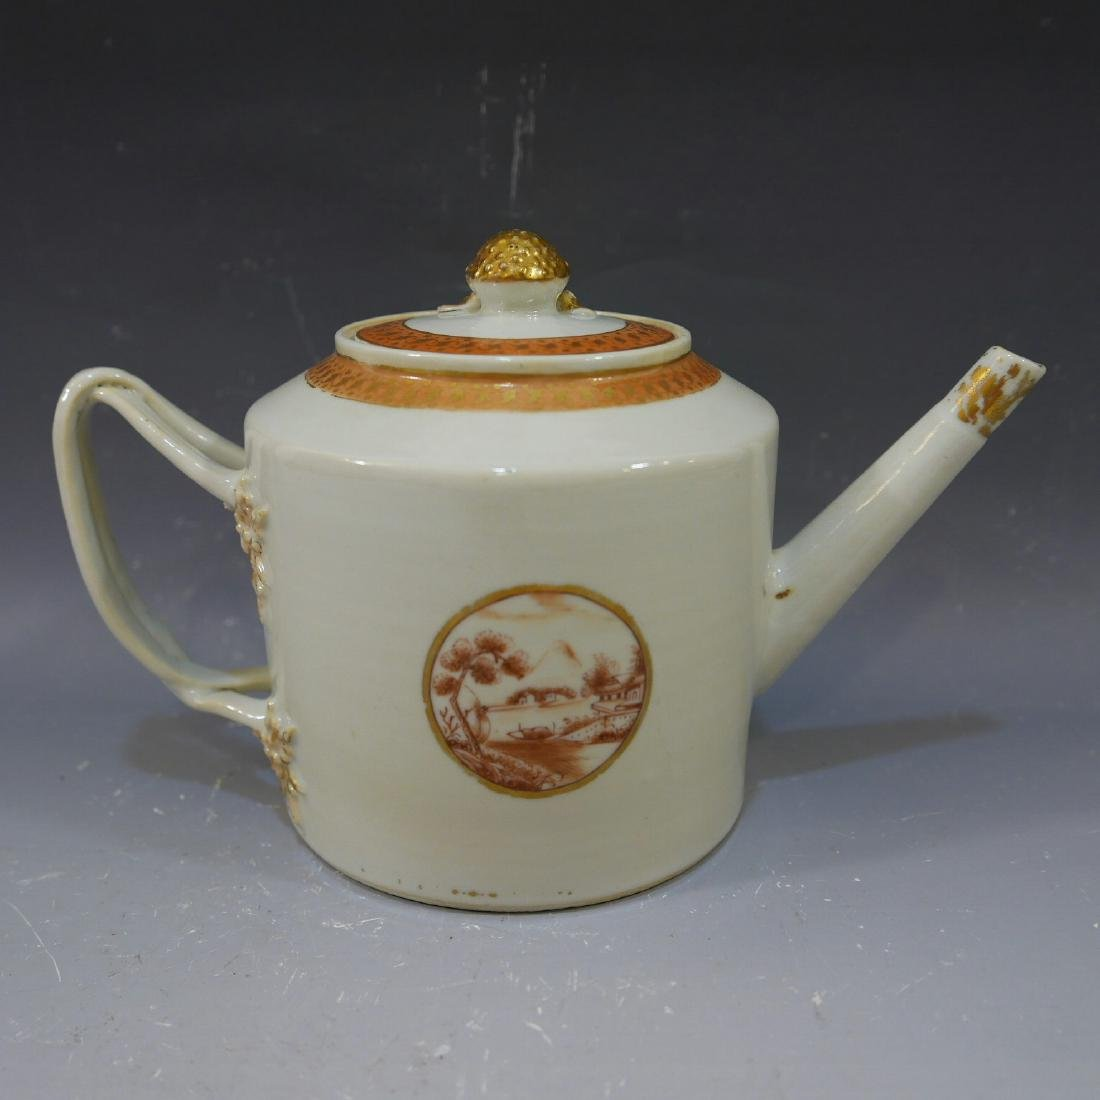 RARE ANTIQUE CHINESE PORCELAIN TEAPOT - 18TH CENTURY